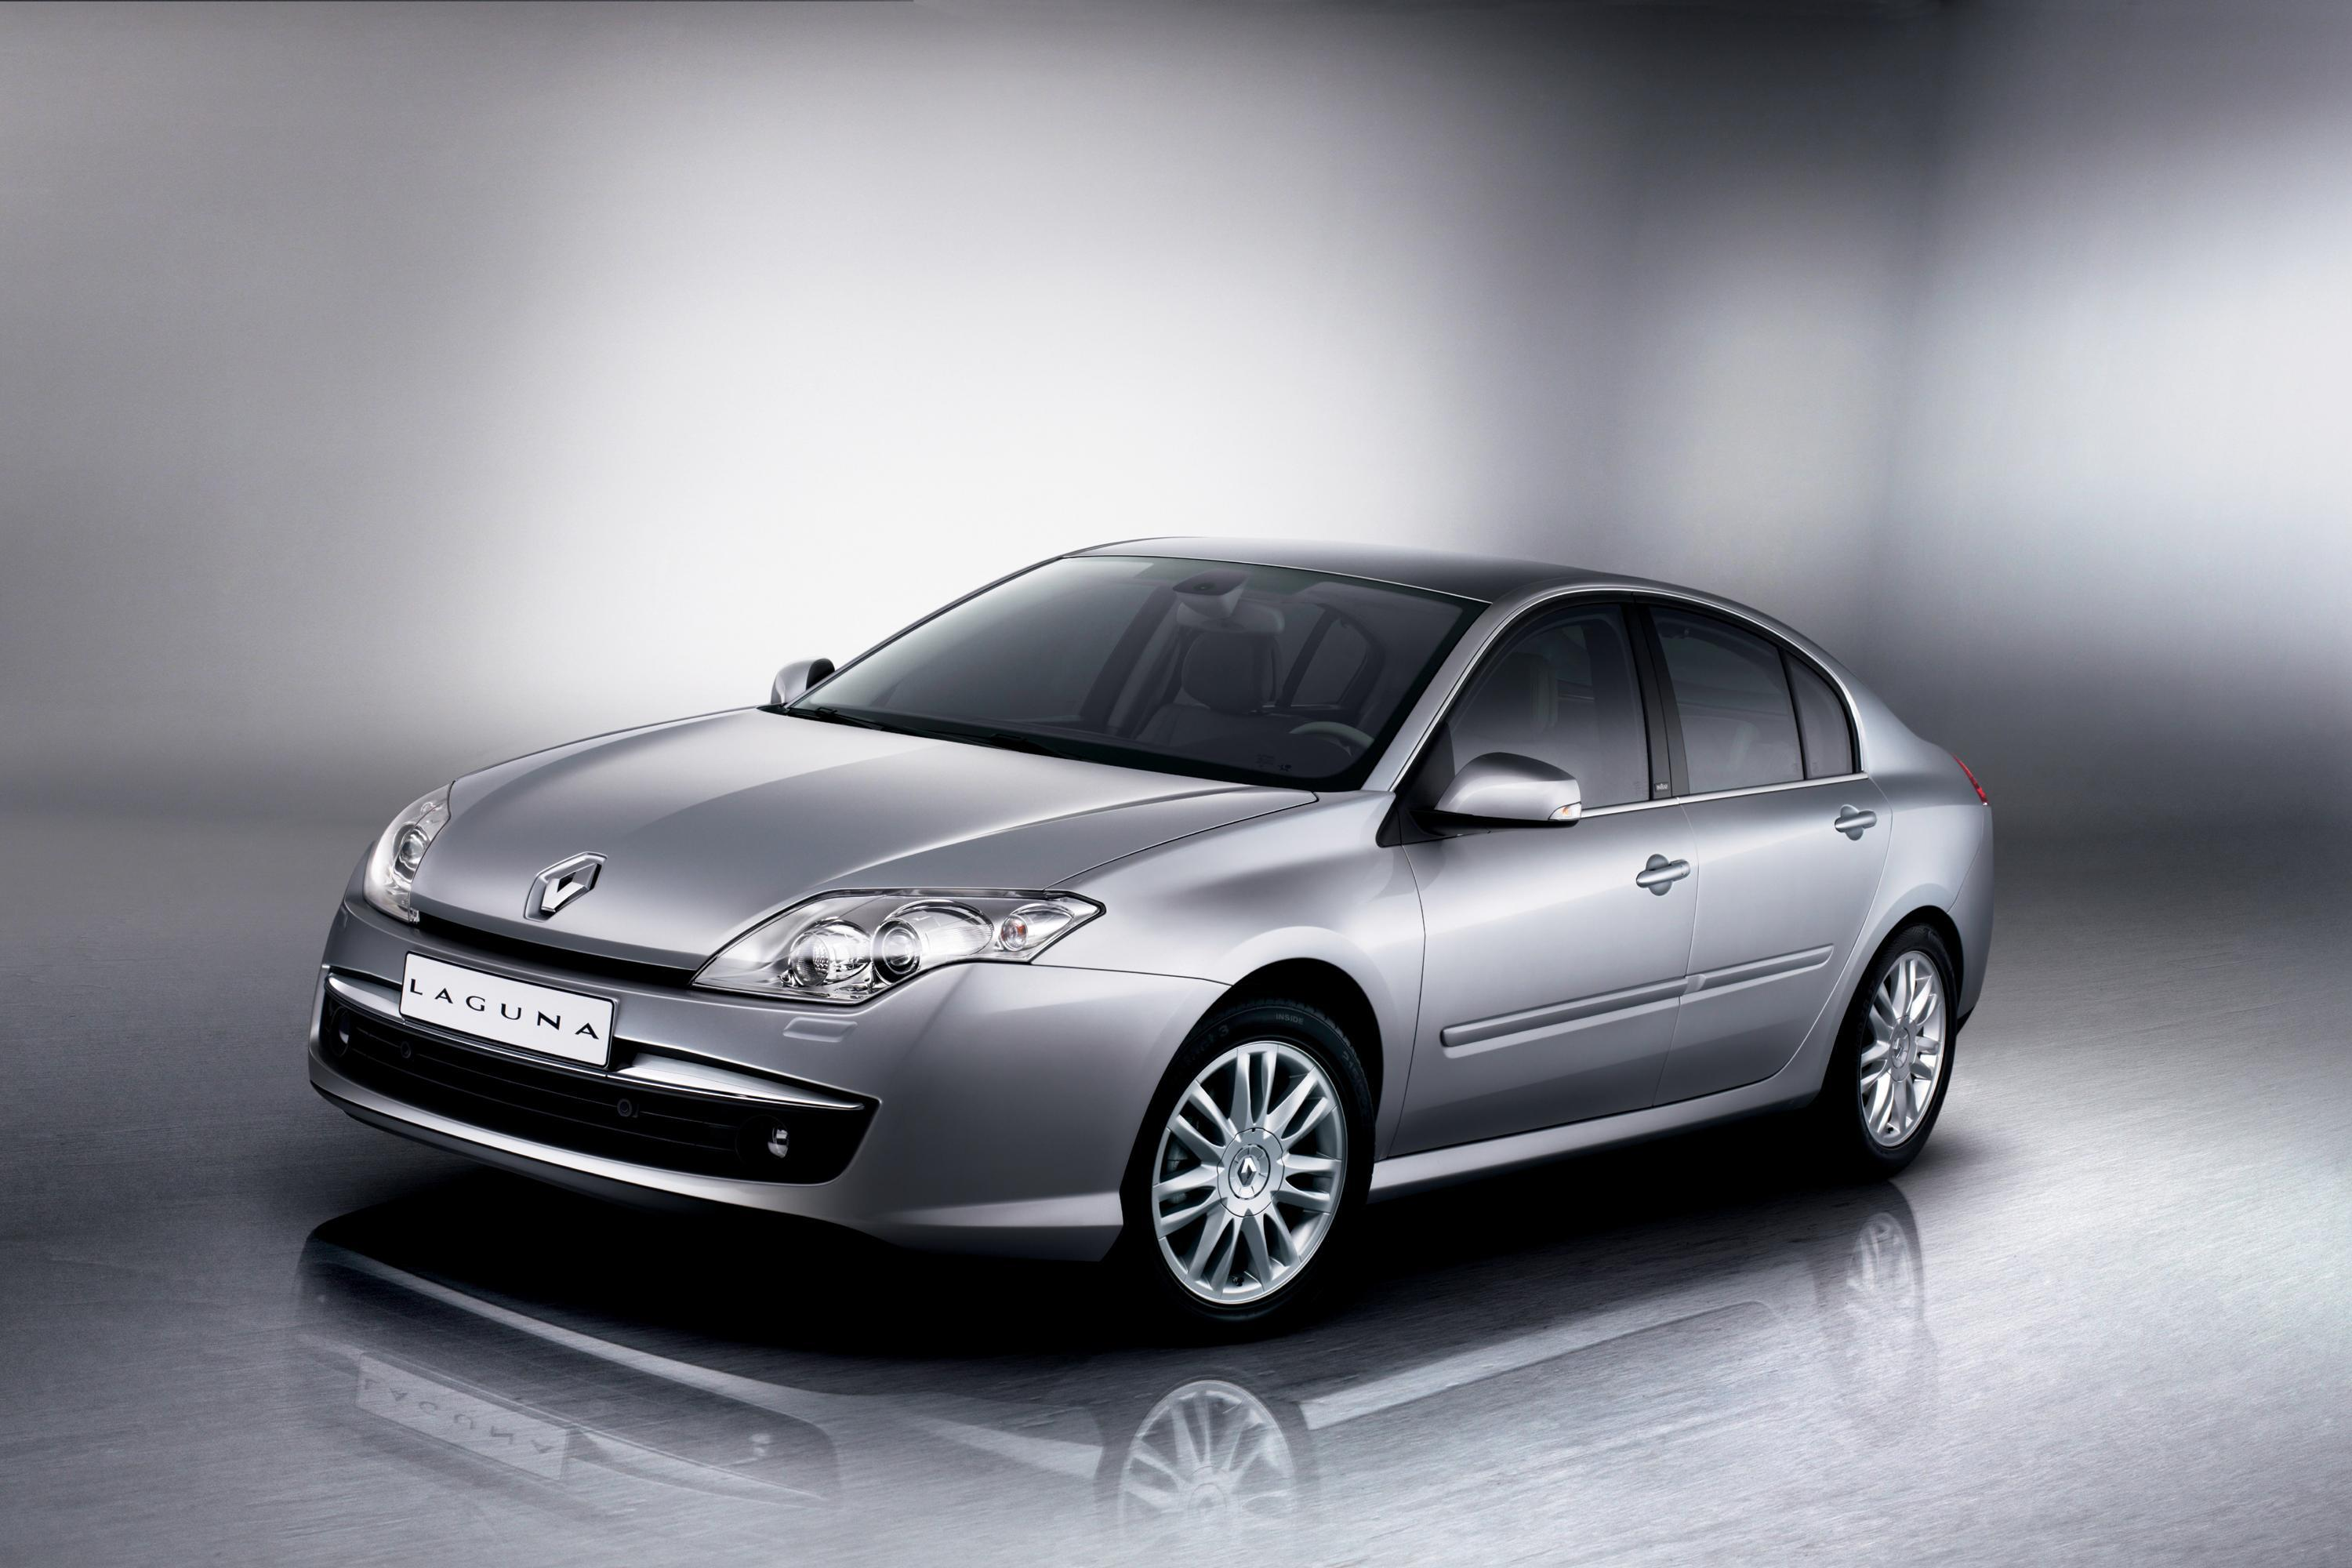 2008 Renault Laguna | Top Speed. »